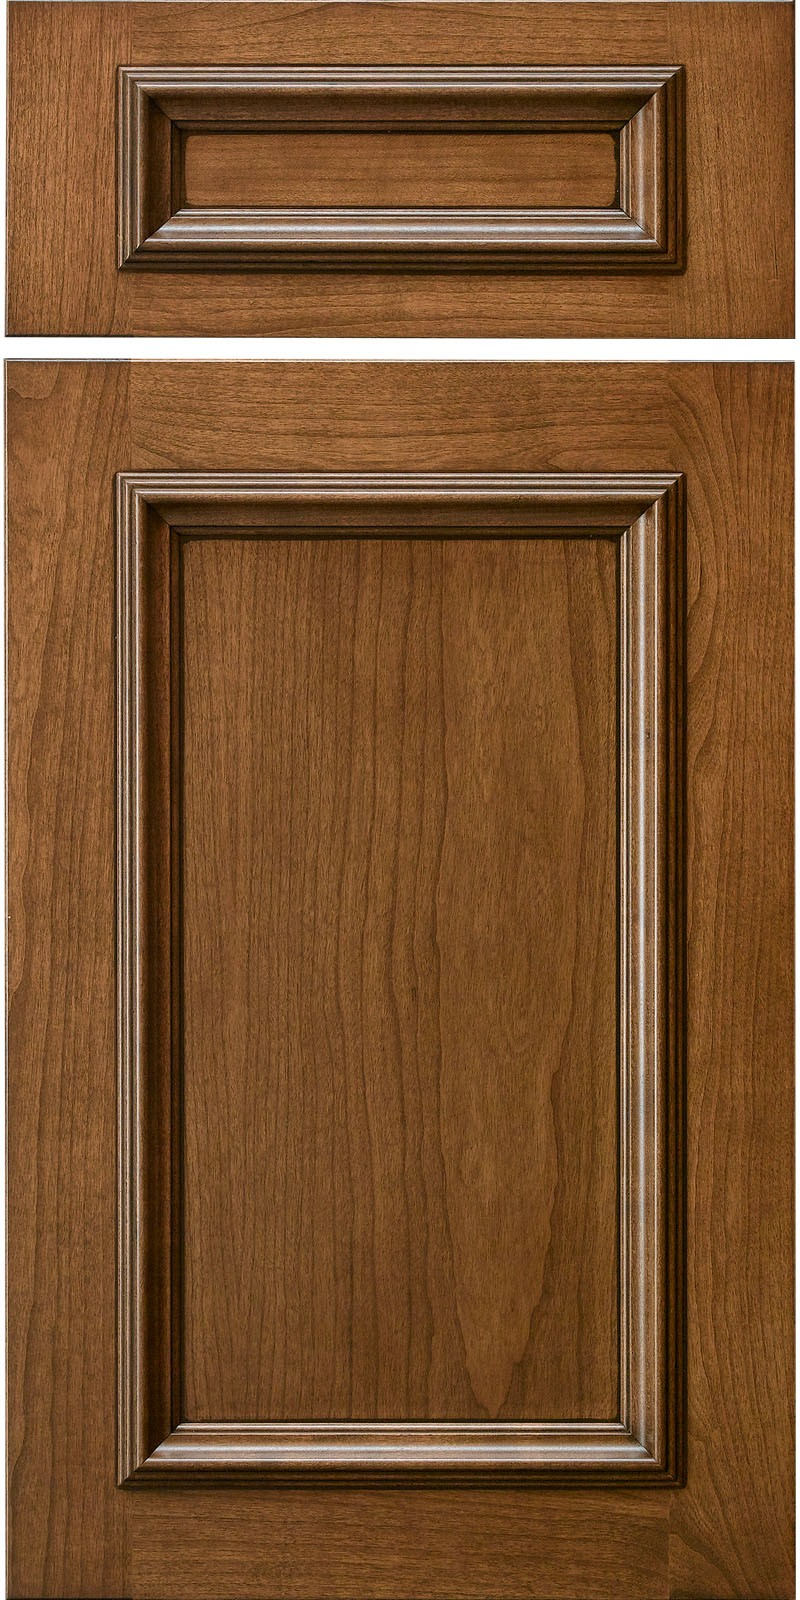 Tw101547 Plywood Panel Materials Cabinet Doors Drawer Fronts Products